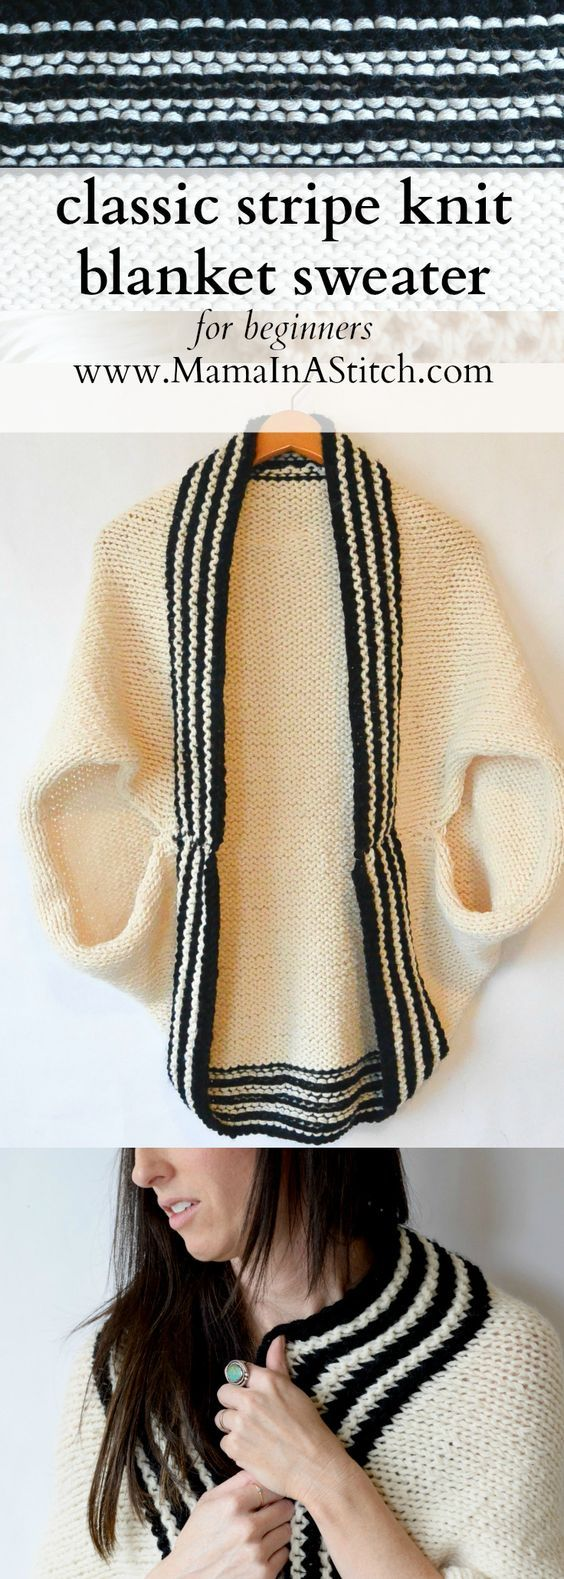 Cocoon Shrug Knitting Pattern Free Tutorial Super Easy | punto ...